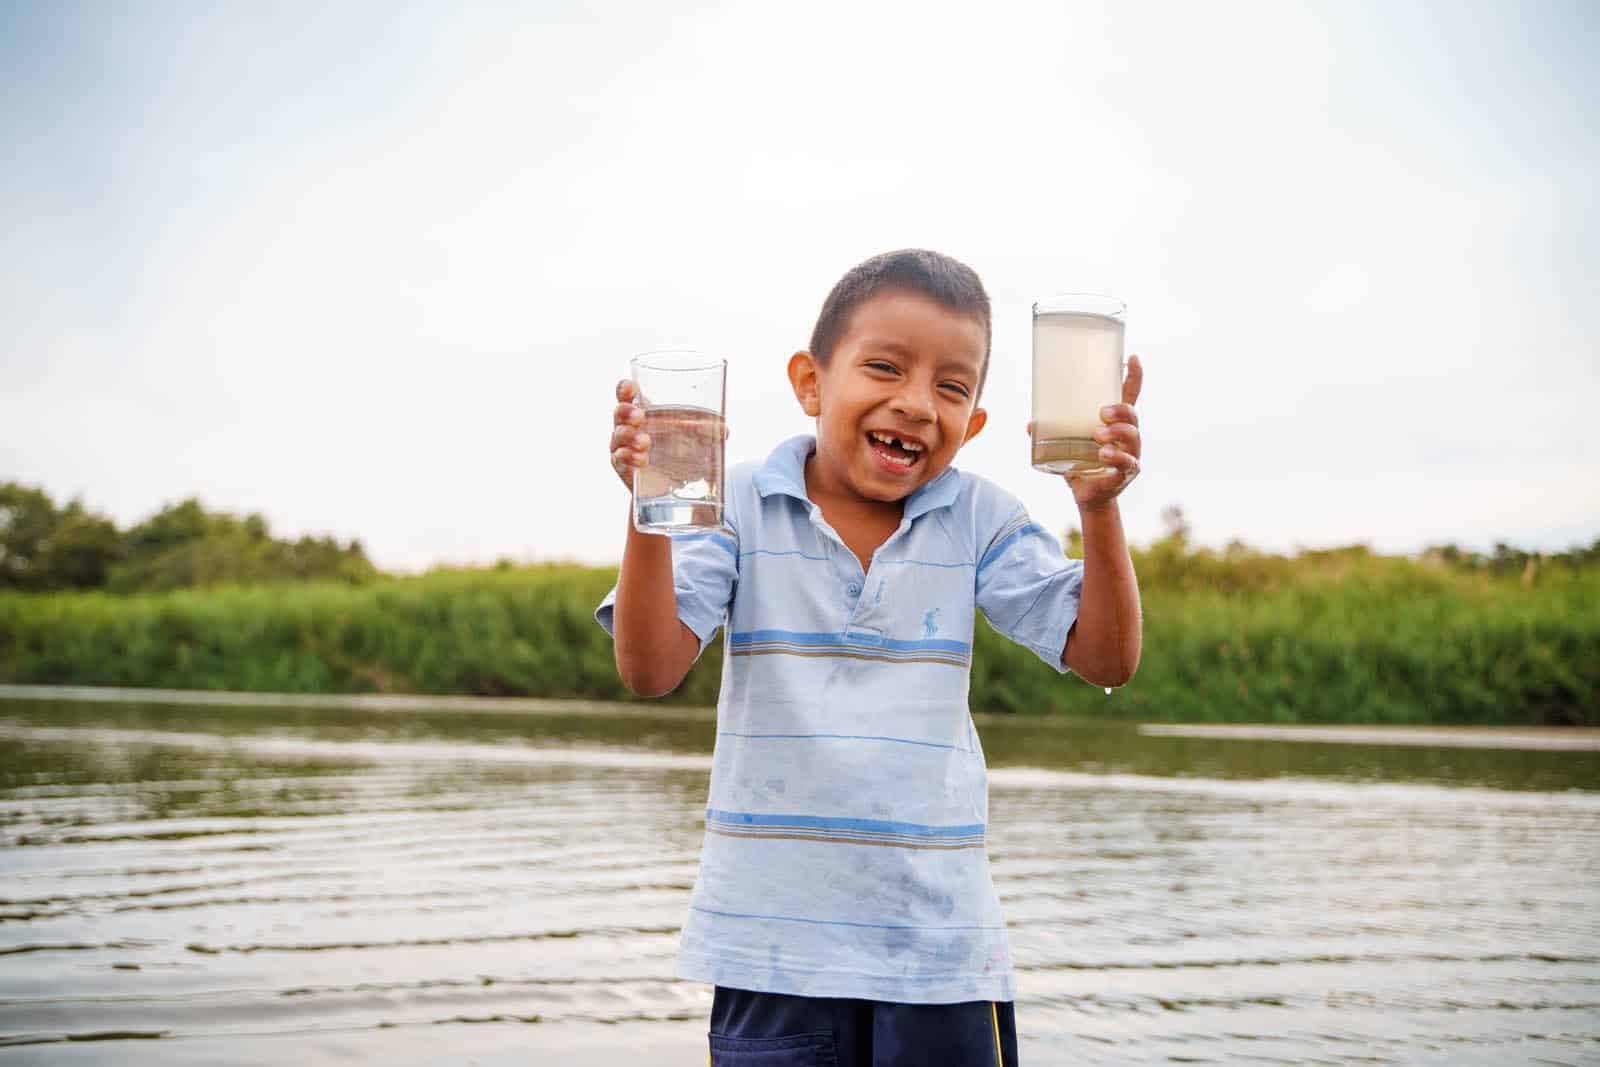 Before and After Safe Water: 20 Powerful Photos